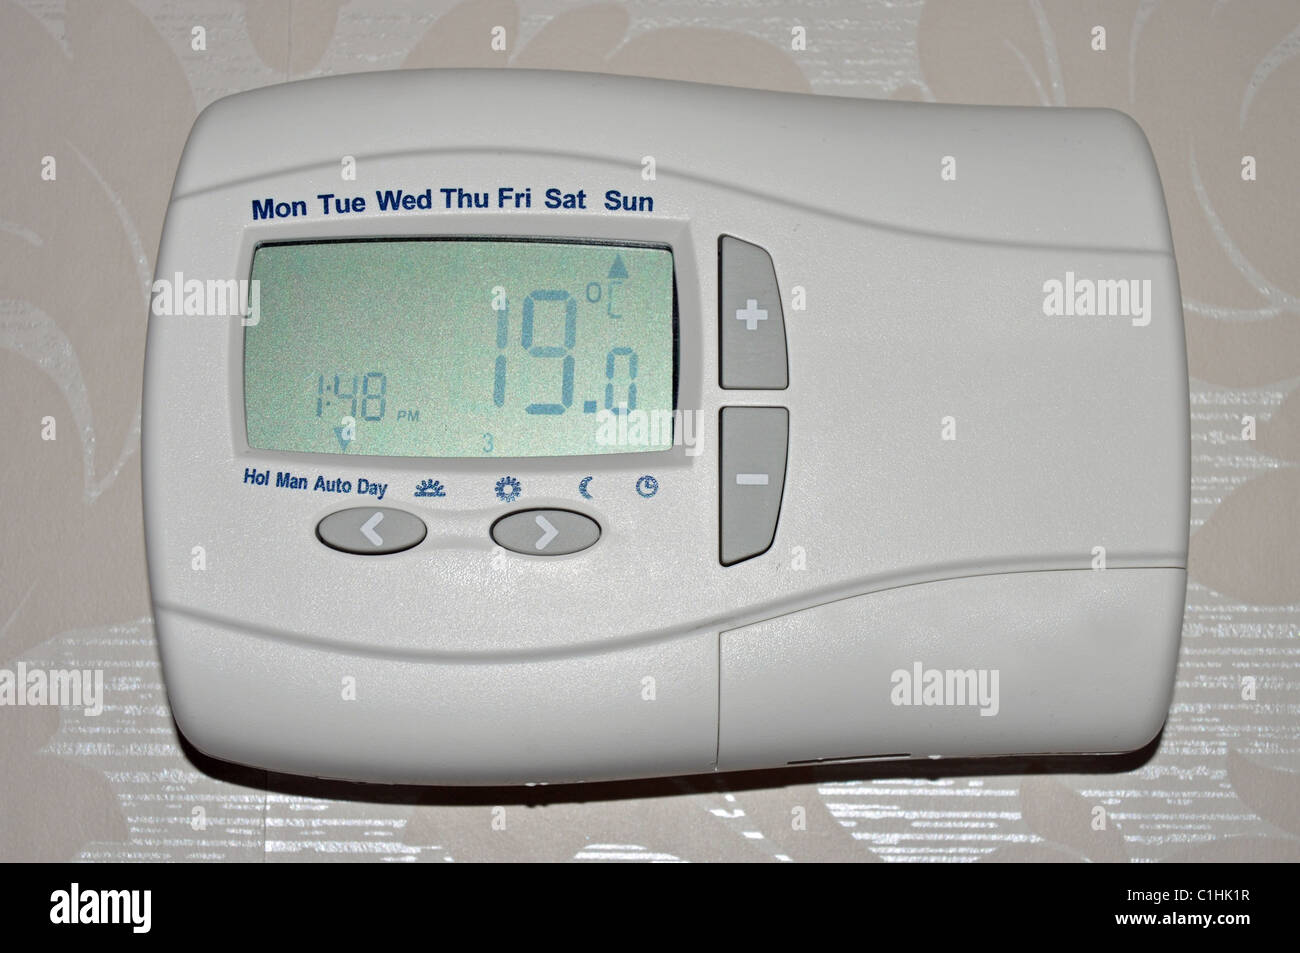 A wall mounted 'Programmable Room Thermostat' - Stock Image